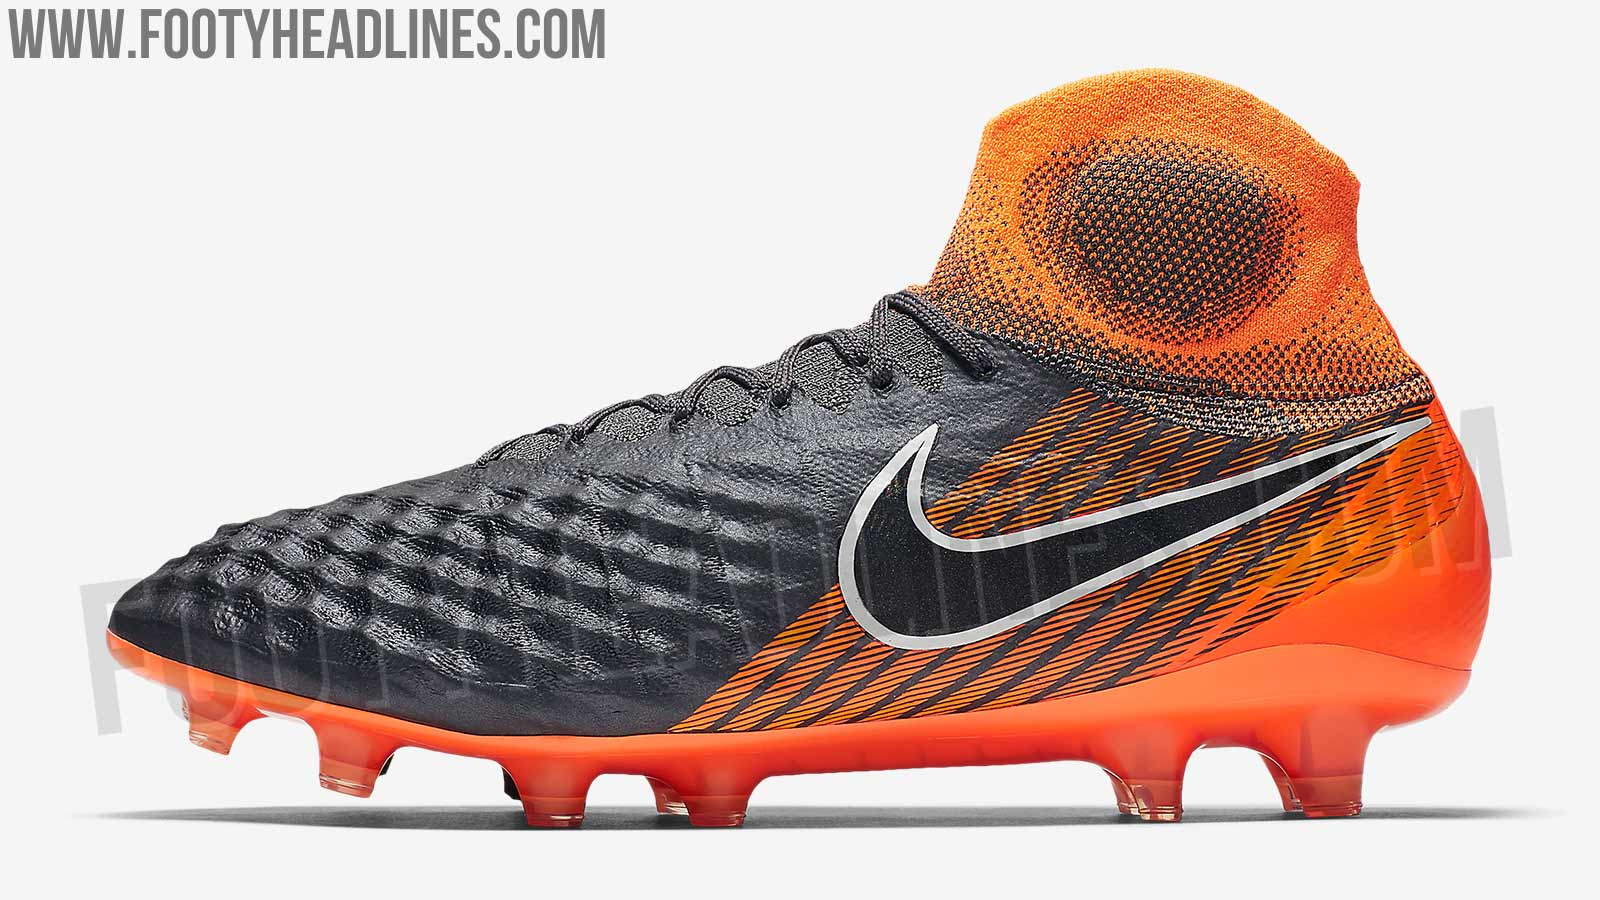 Nike Fast AF Pack Revealed - Footy Headlines - photo#10